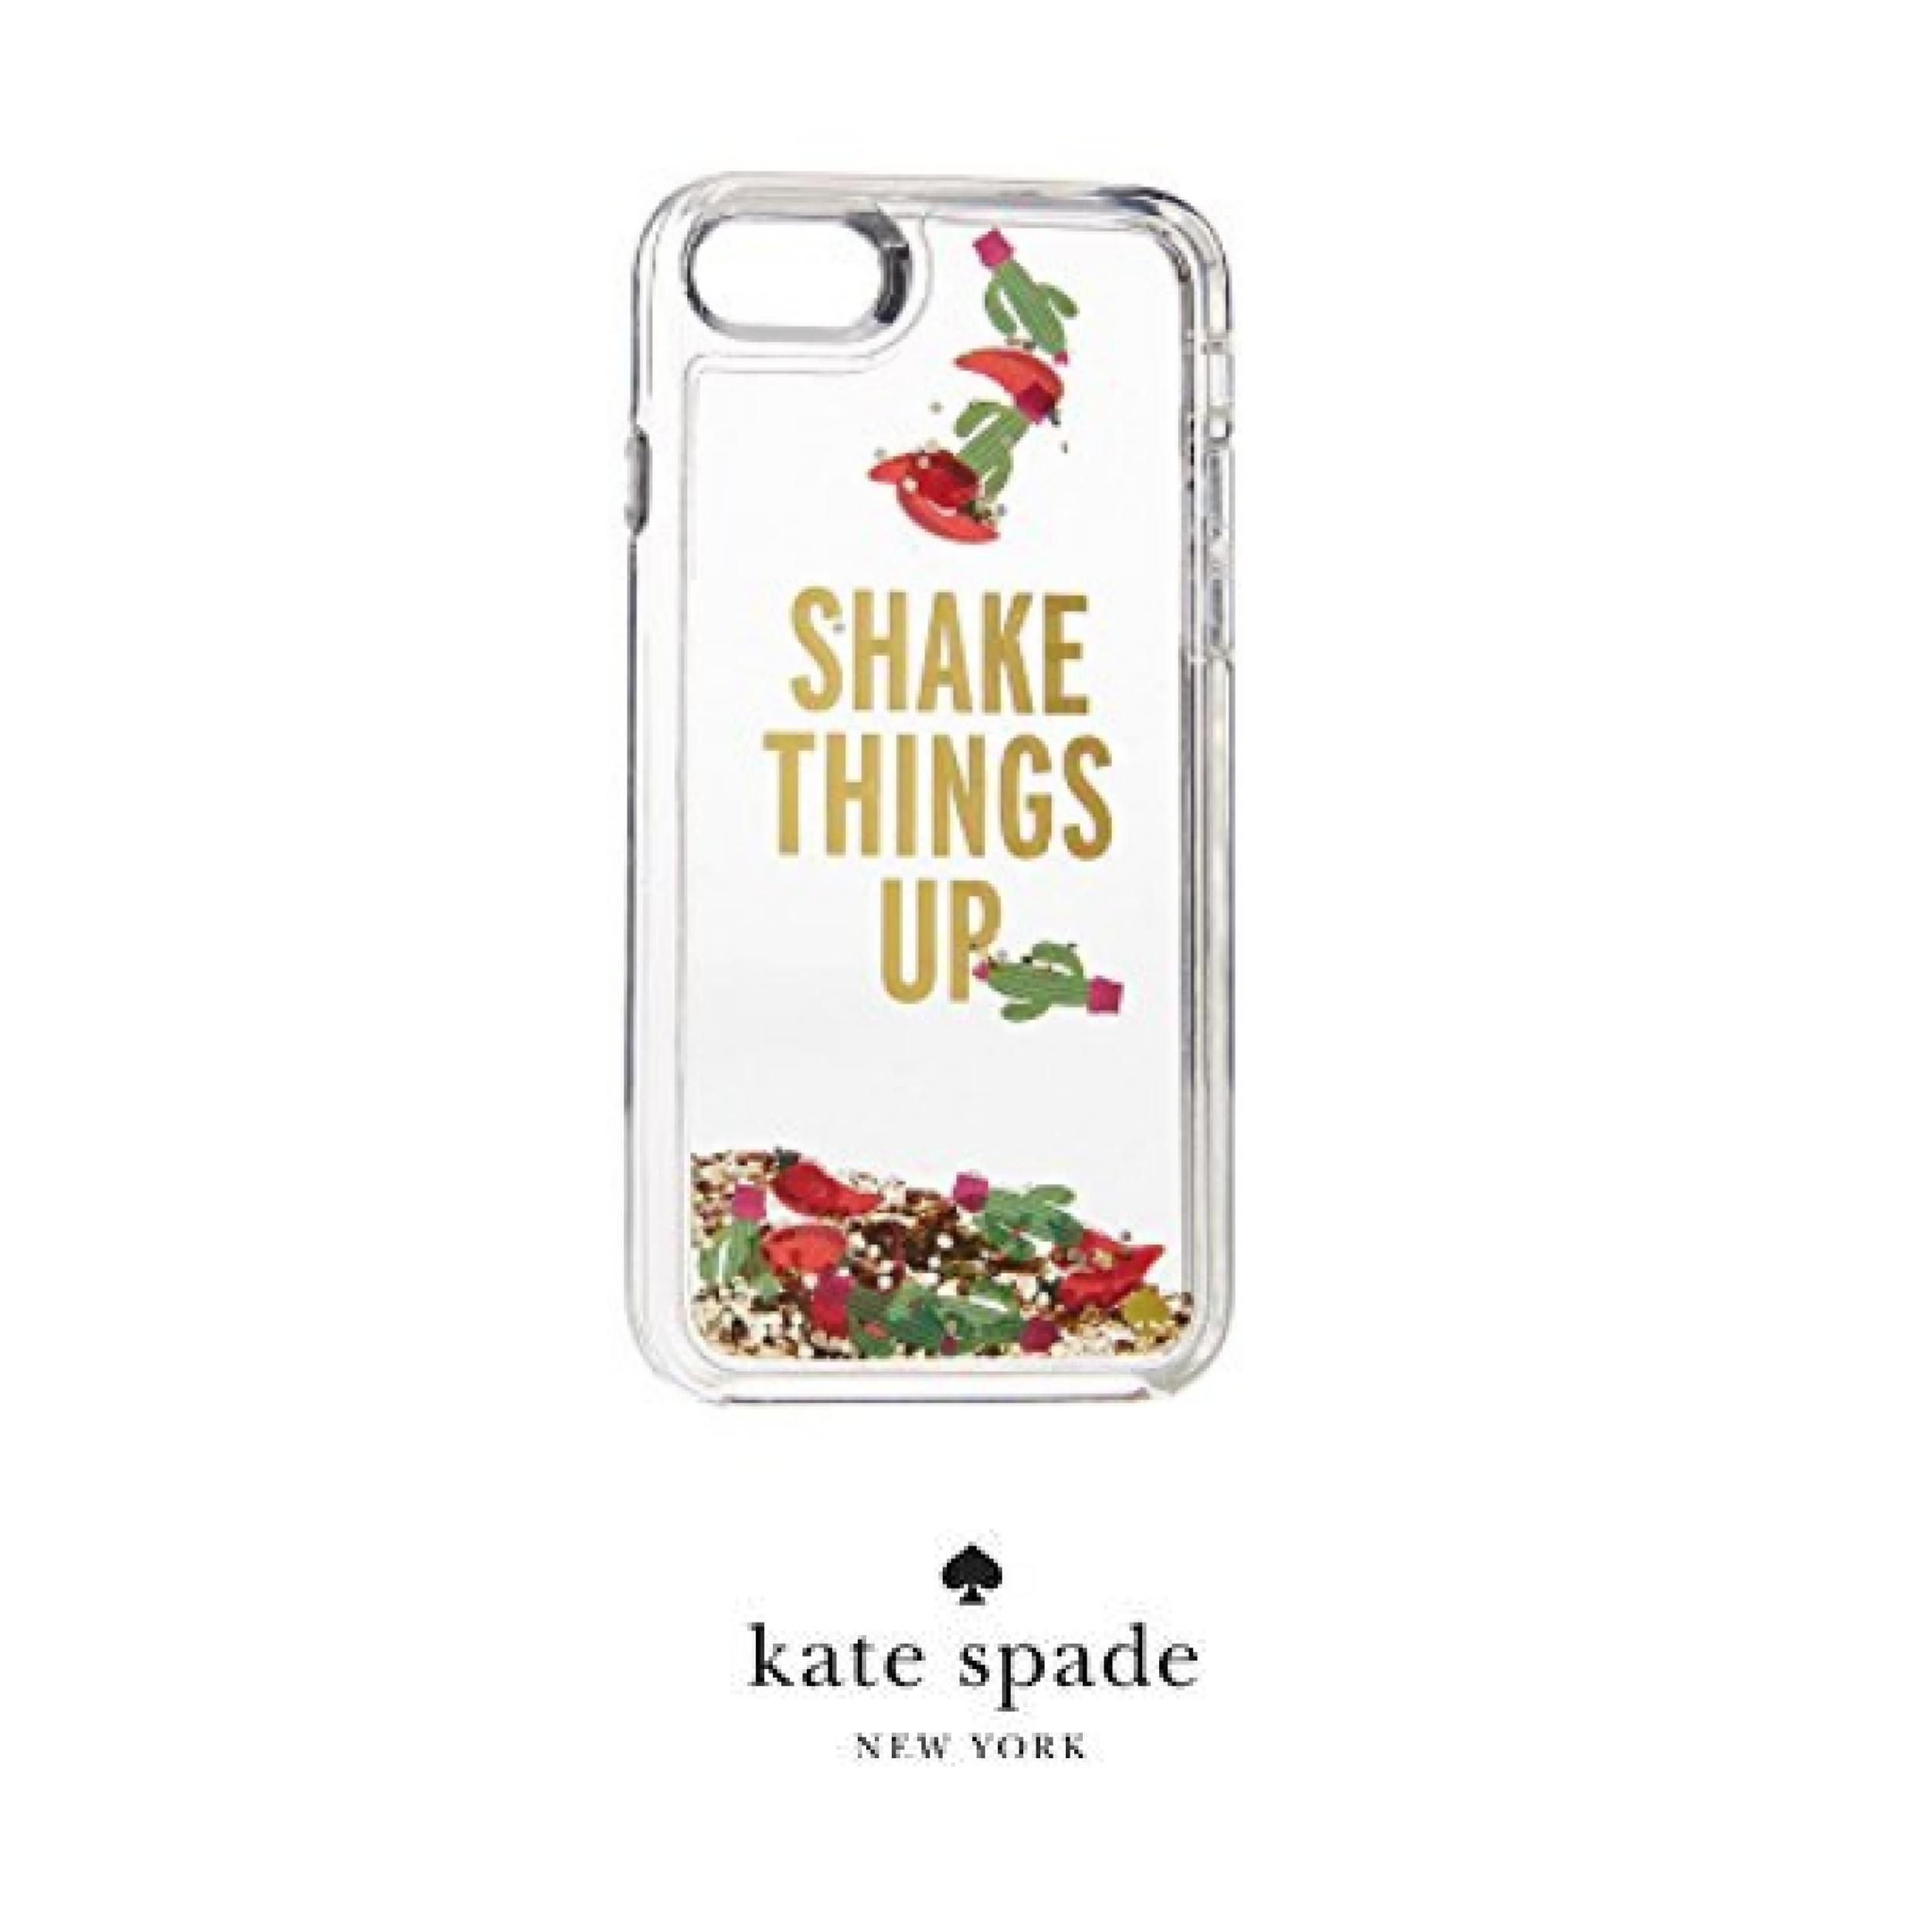 Kate Spade New York Shake Things Up Phone Case for iPhone7